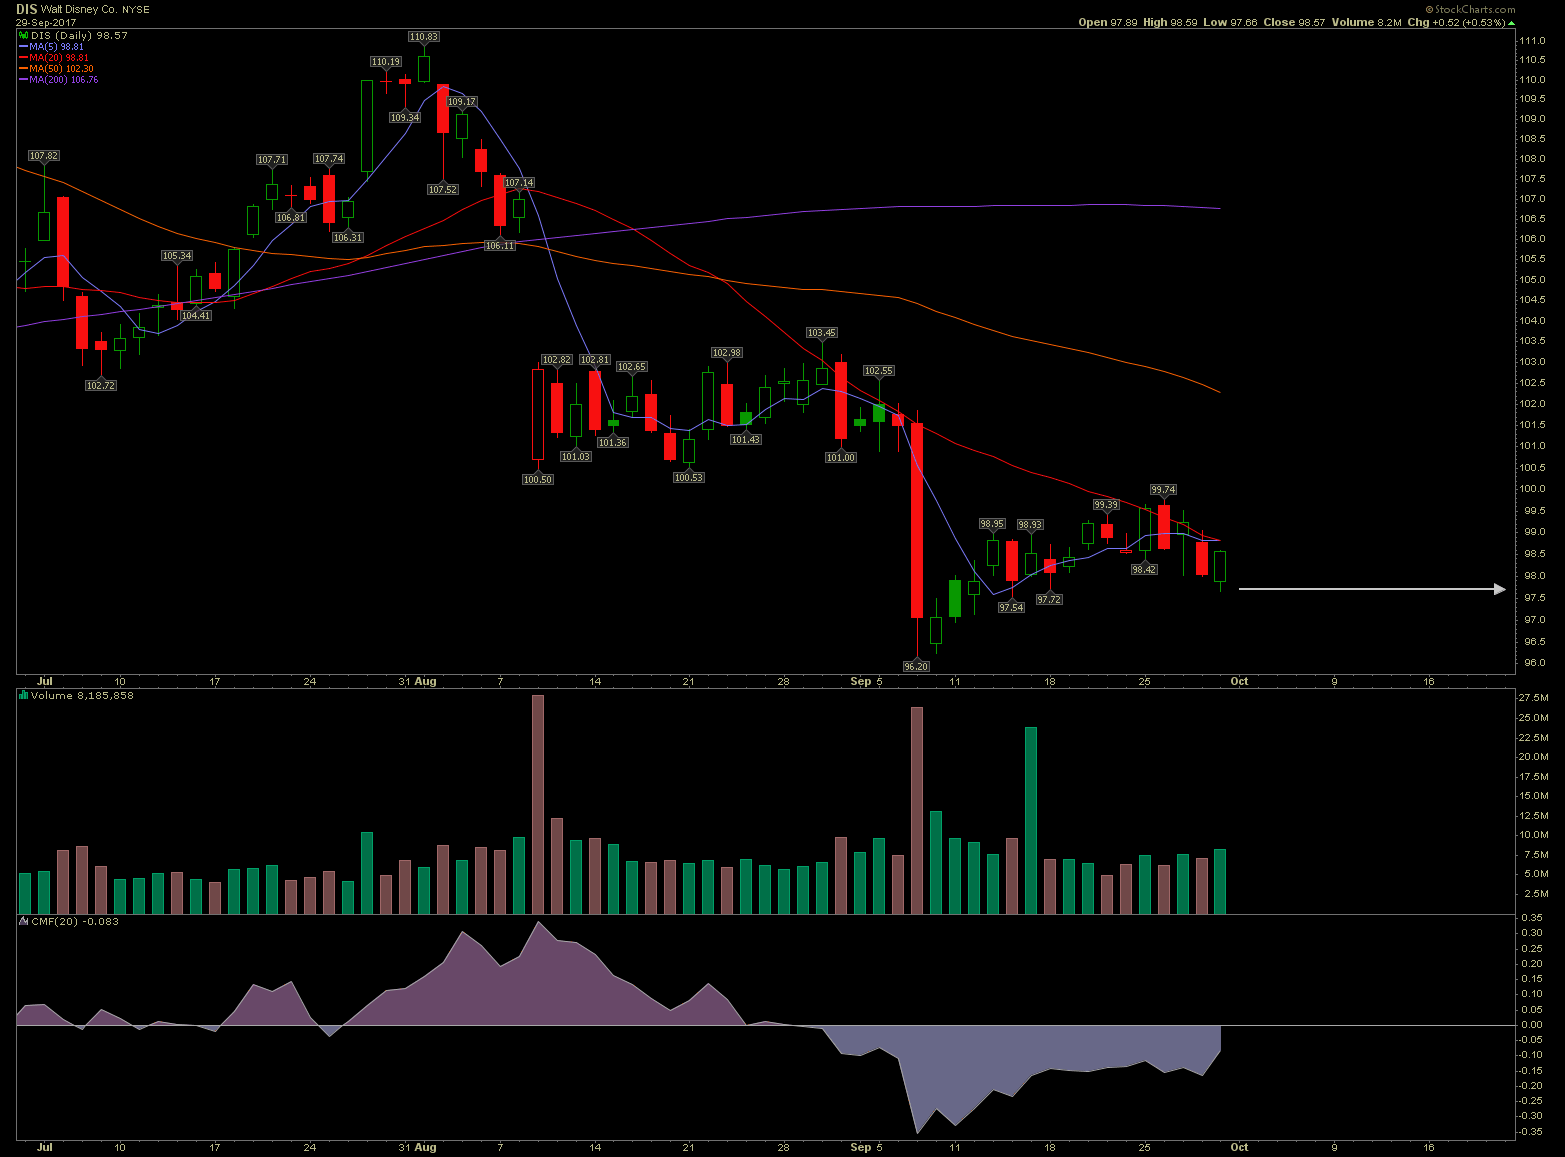 Stalking Disney Stock For a Long Entry and 31 Week Hold